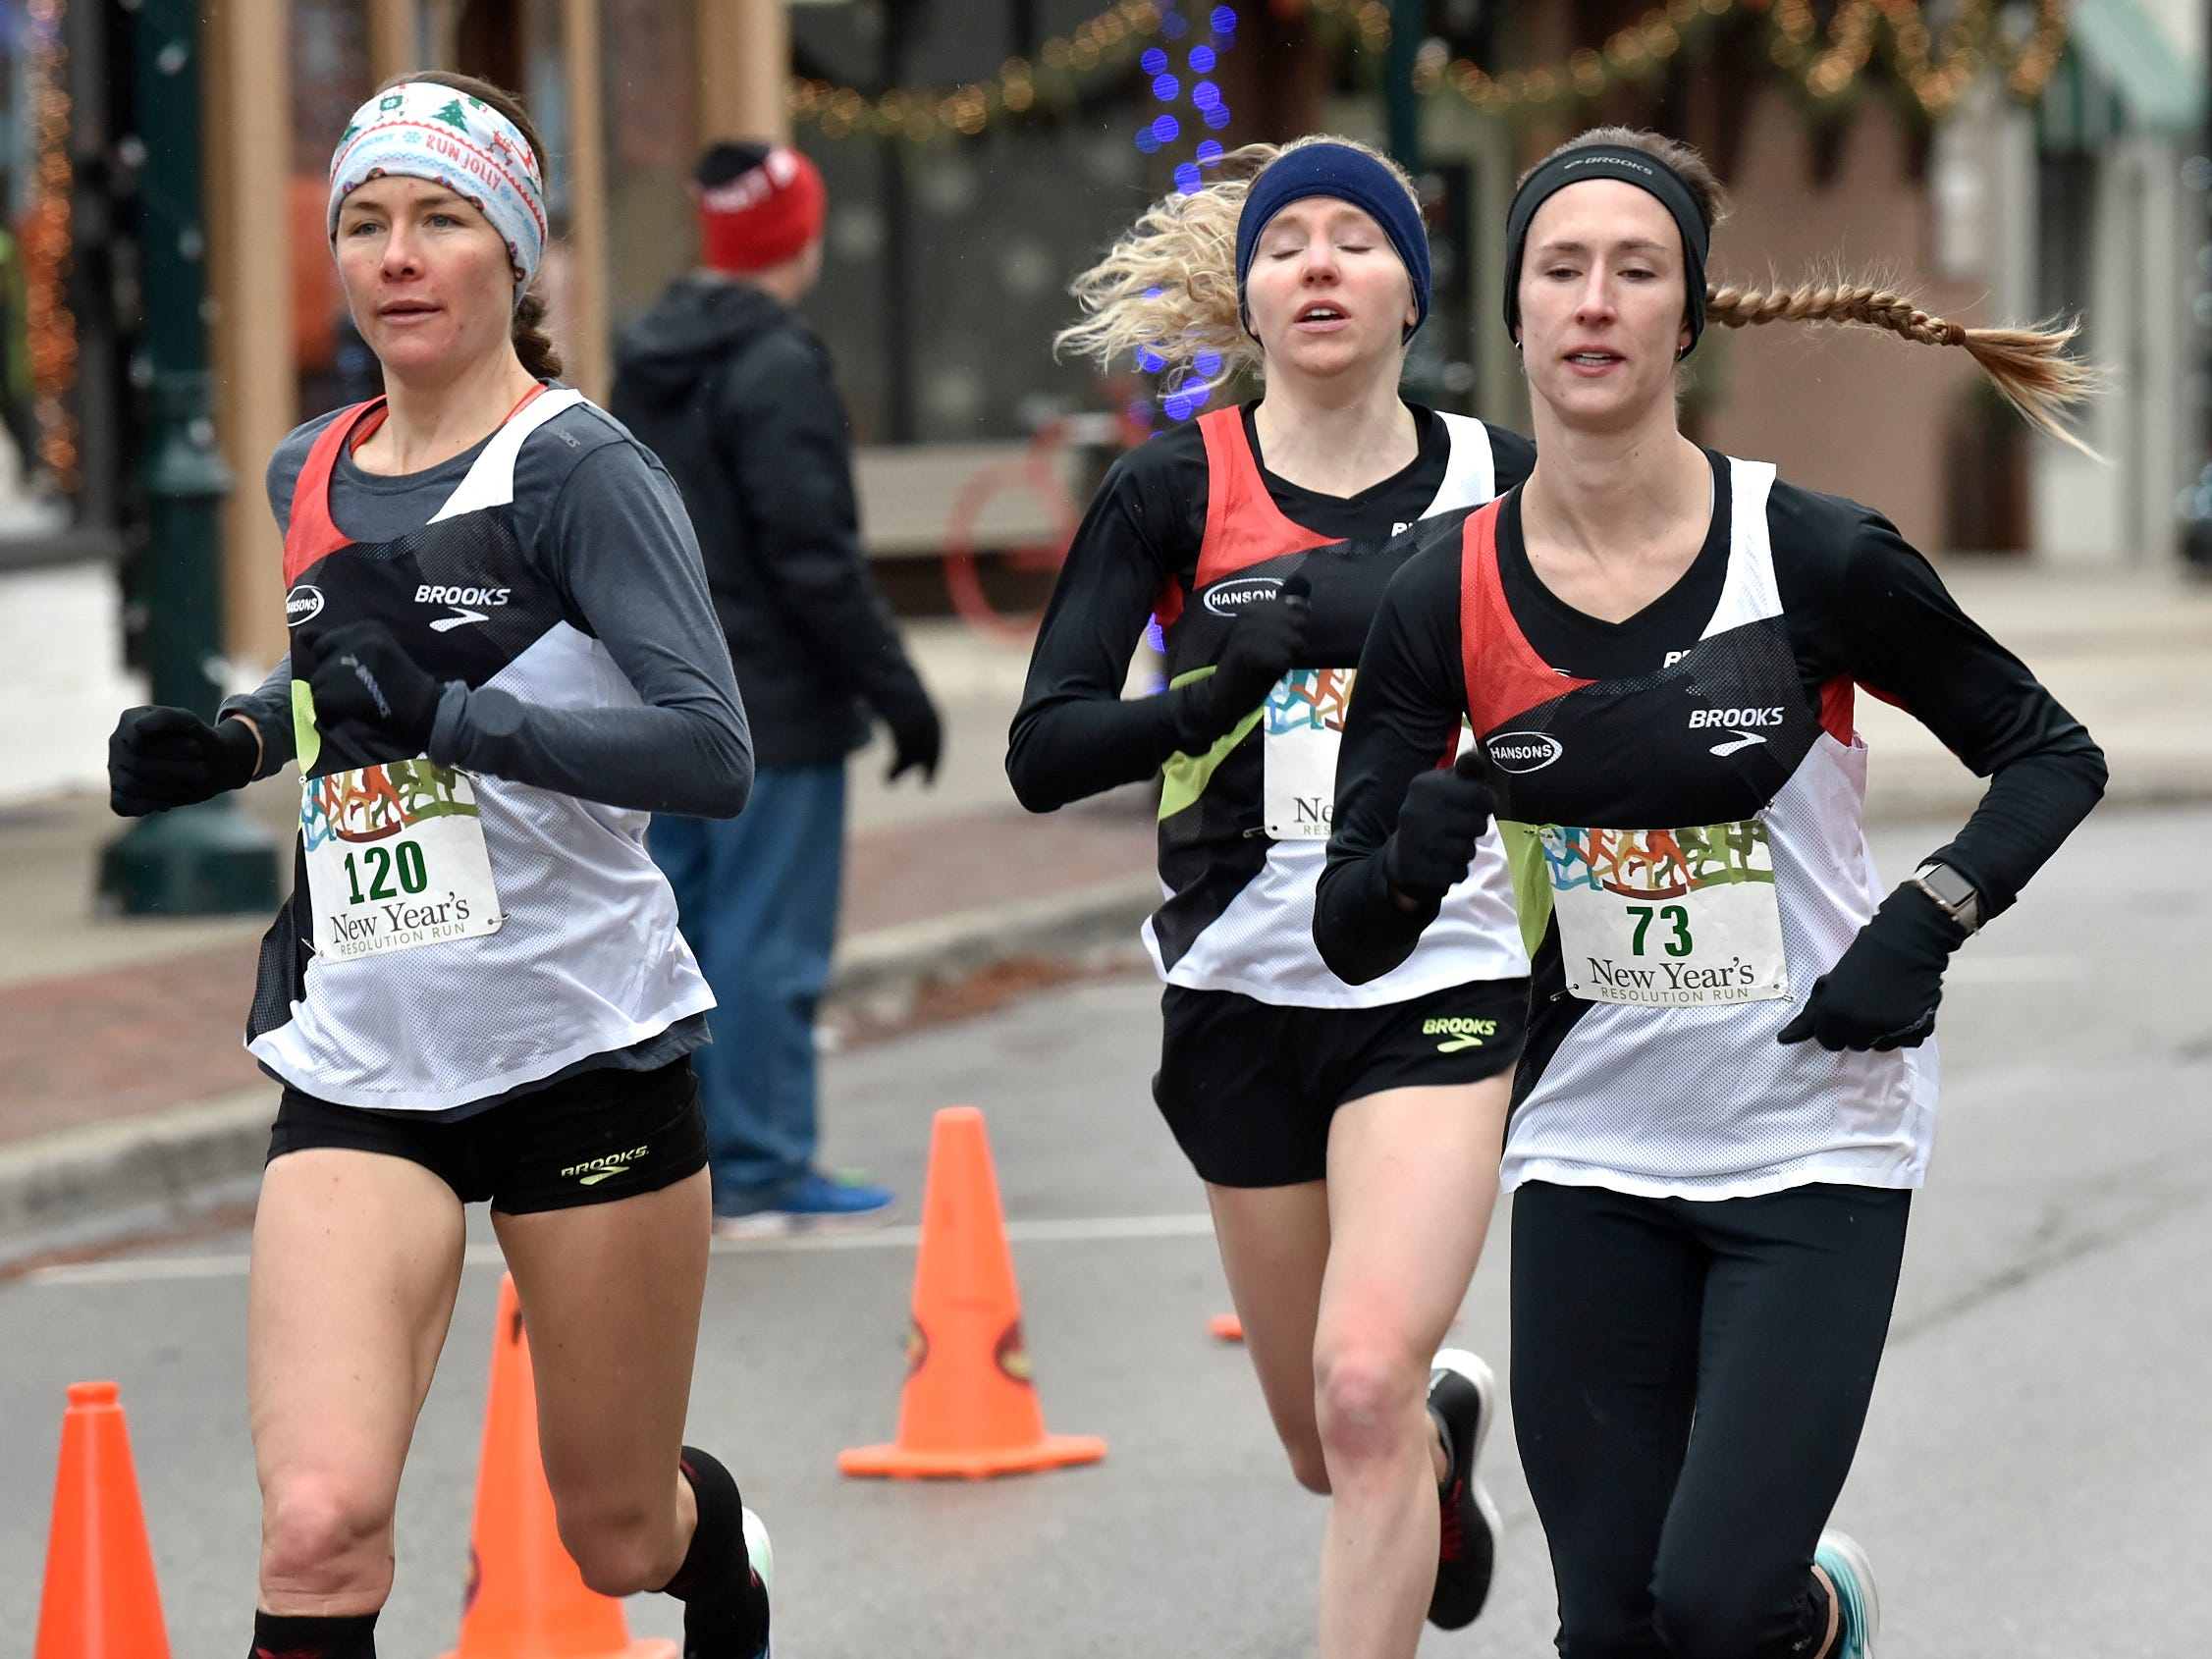 Danna Herrick, left, (120) places first in females ages 30-39 and 9th overall as Chelsea Blaase (71) places first in females ages 20-29 and 7th overall while Anne Marie Blaney (73) places 2nd in females ages 20-29 and 8th overall.